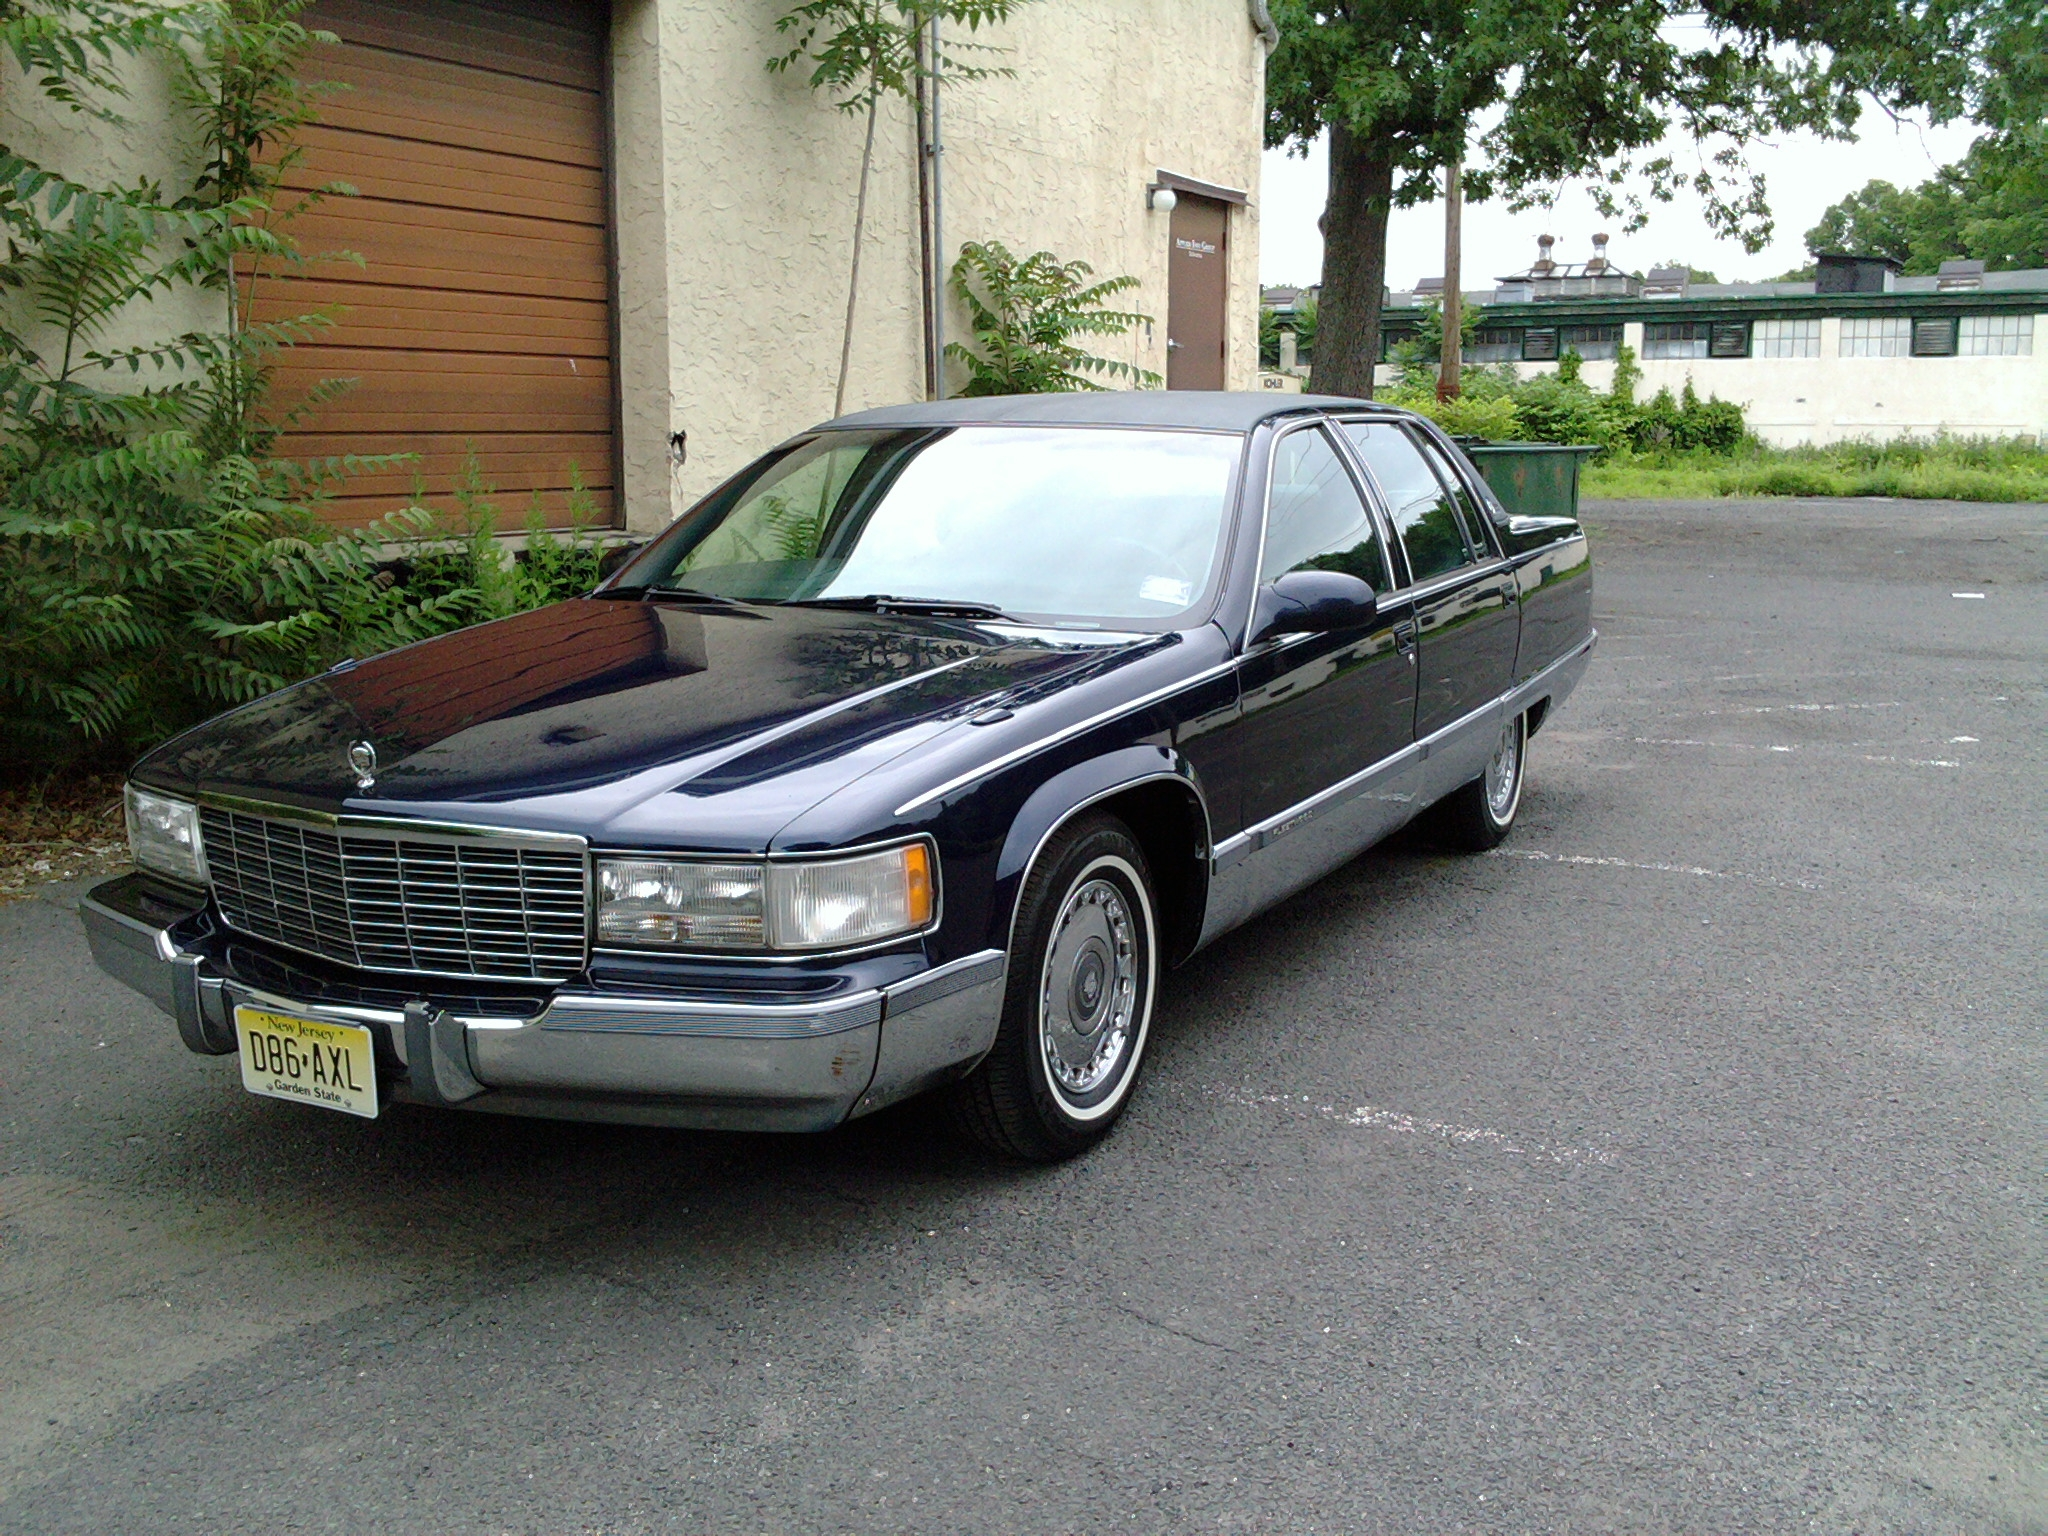 wheelman322 39 s 1995 cadillac fleetwood in rahway nj. Cars Review. Best American Auto & Cars Review